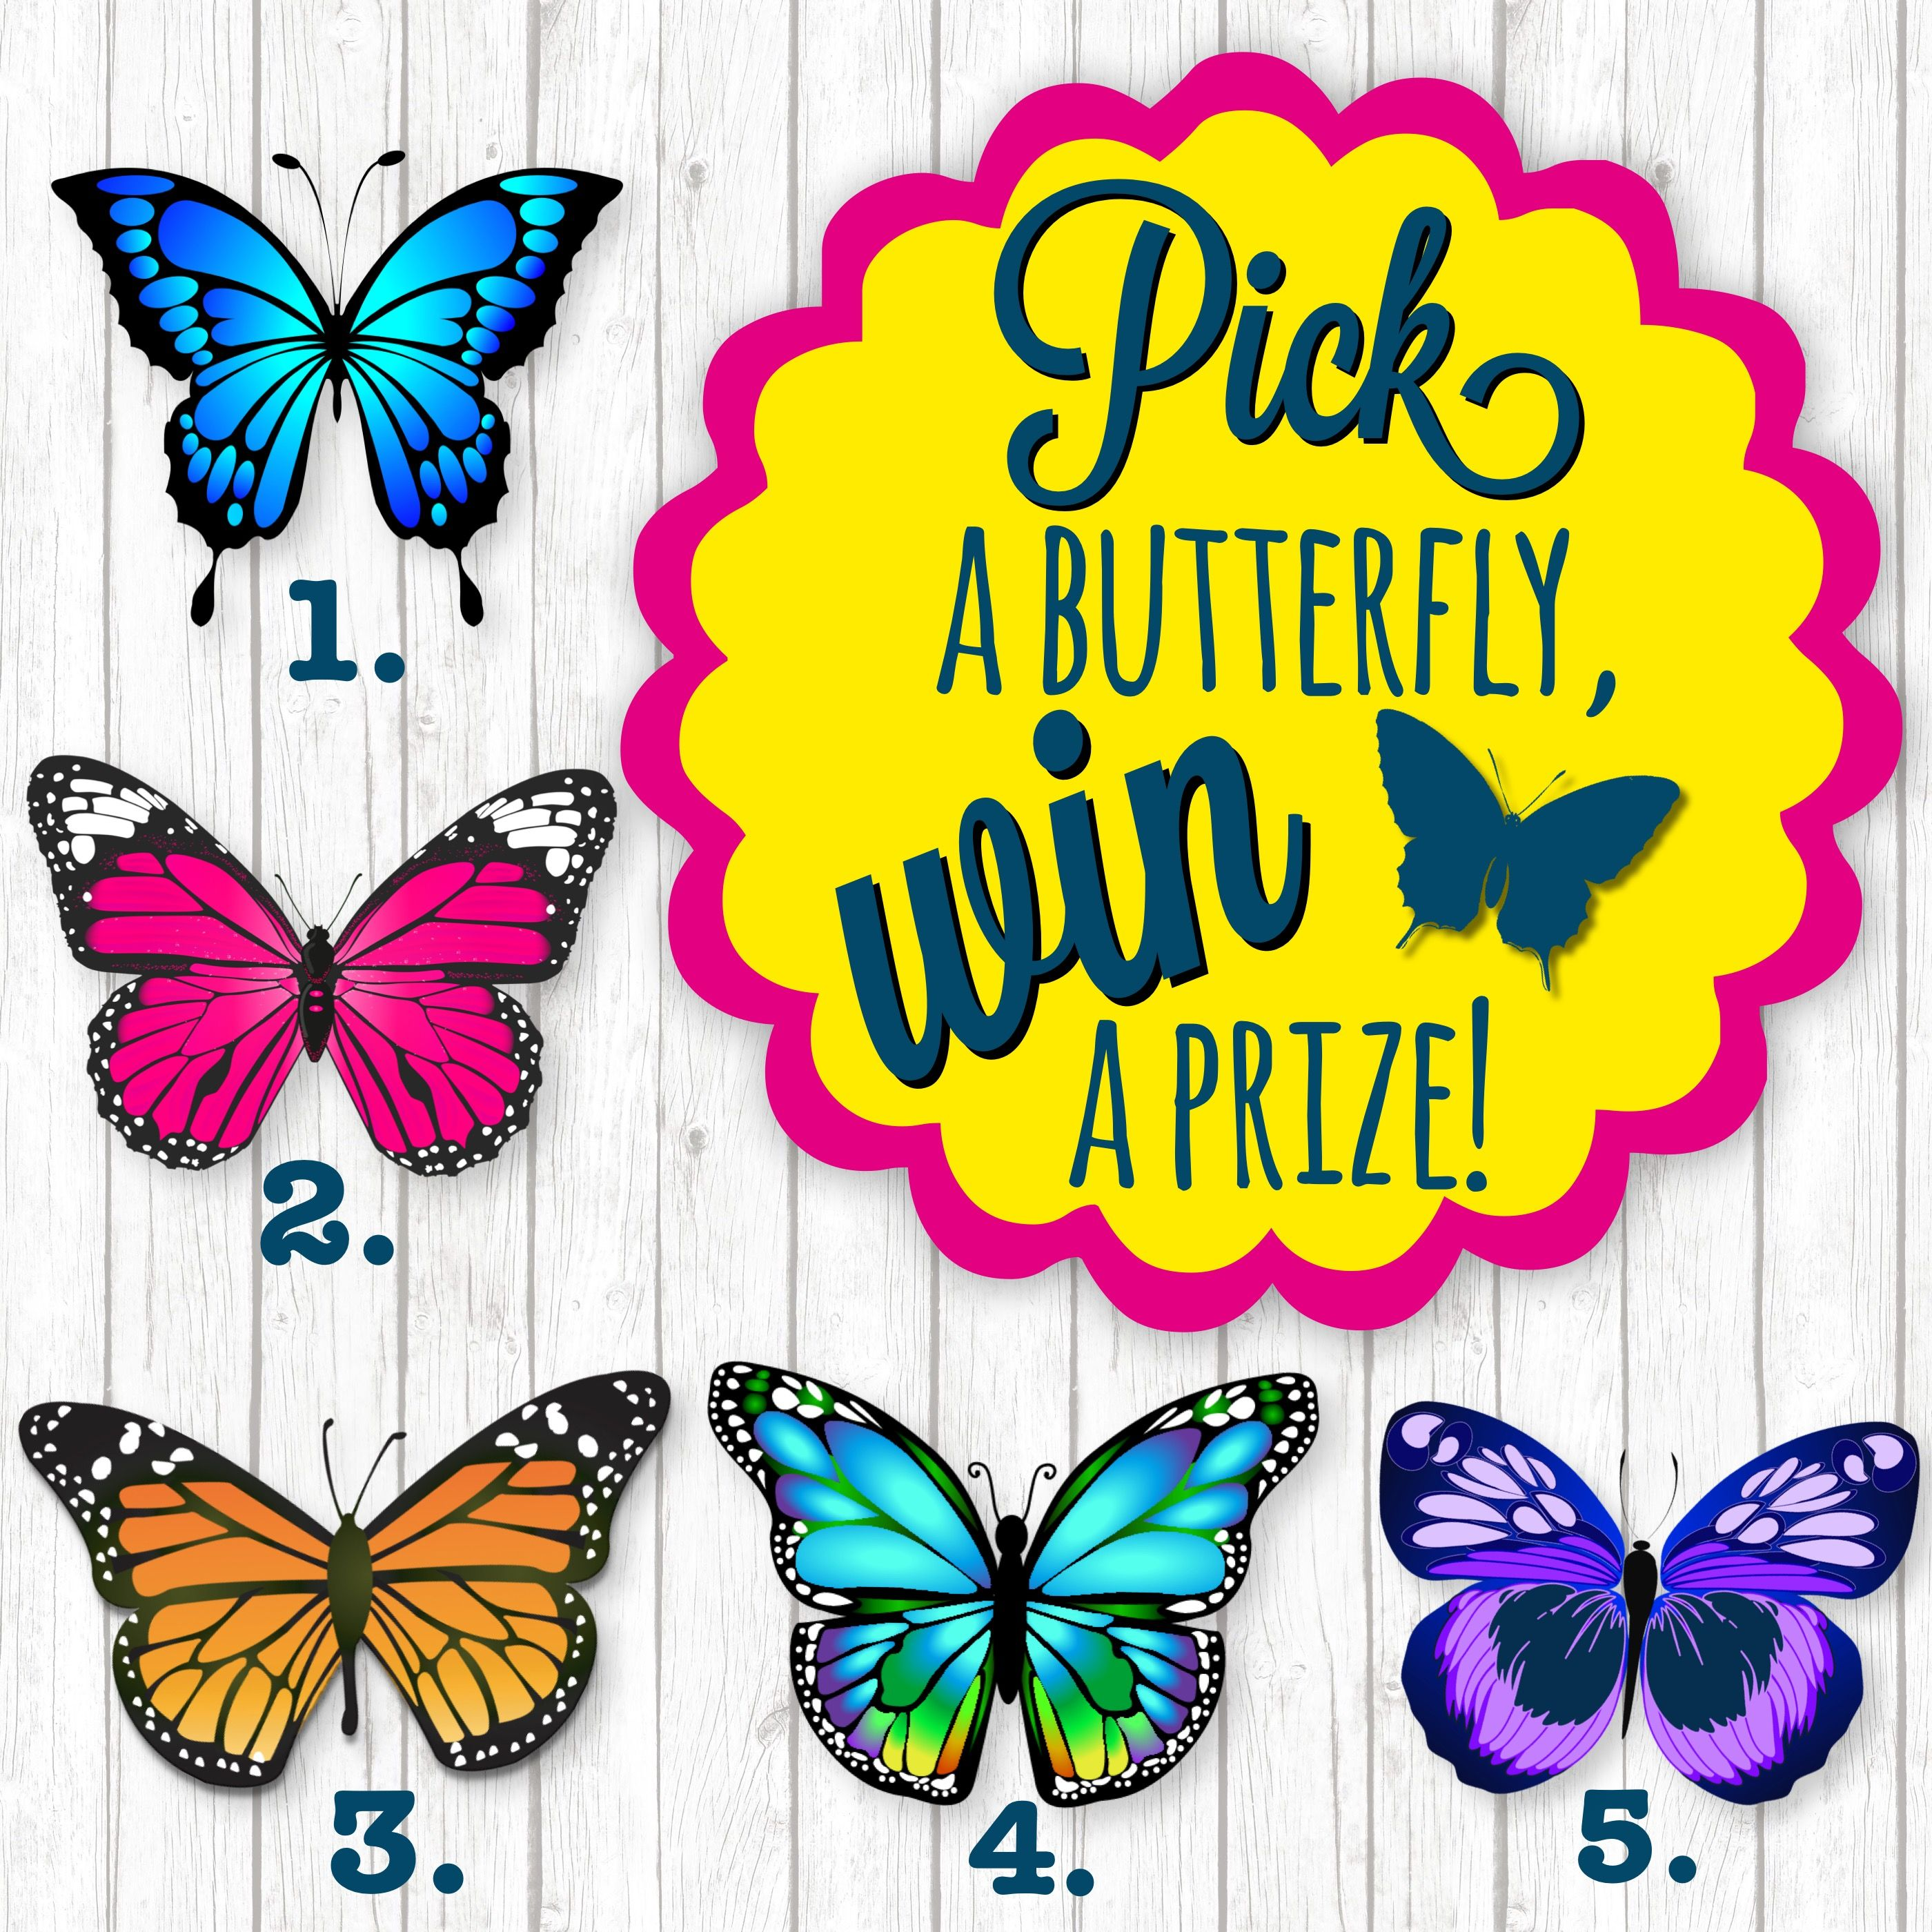 Pick a butterfly win a prize! Great for online sales parties or VIP ...